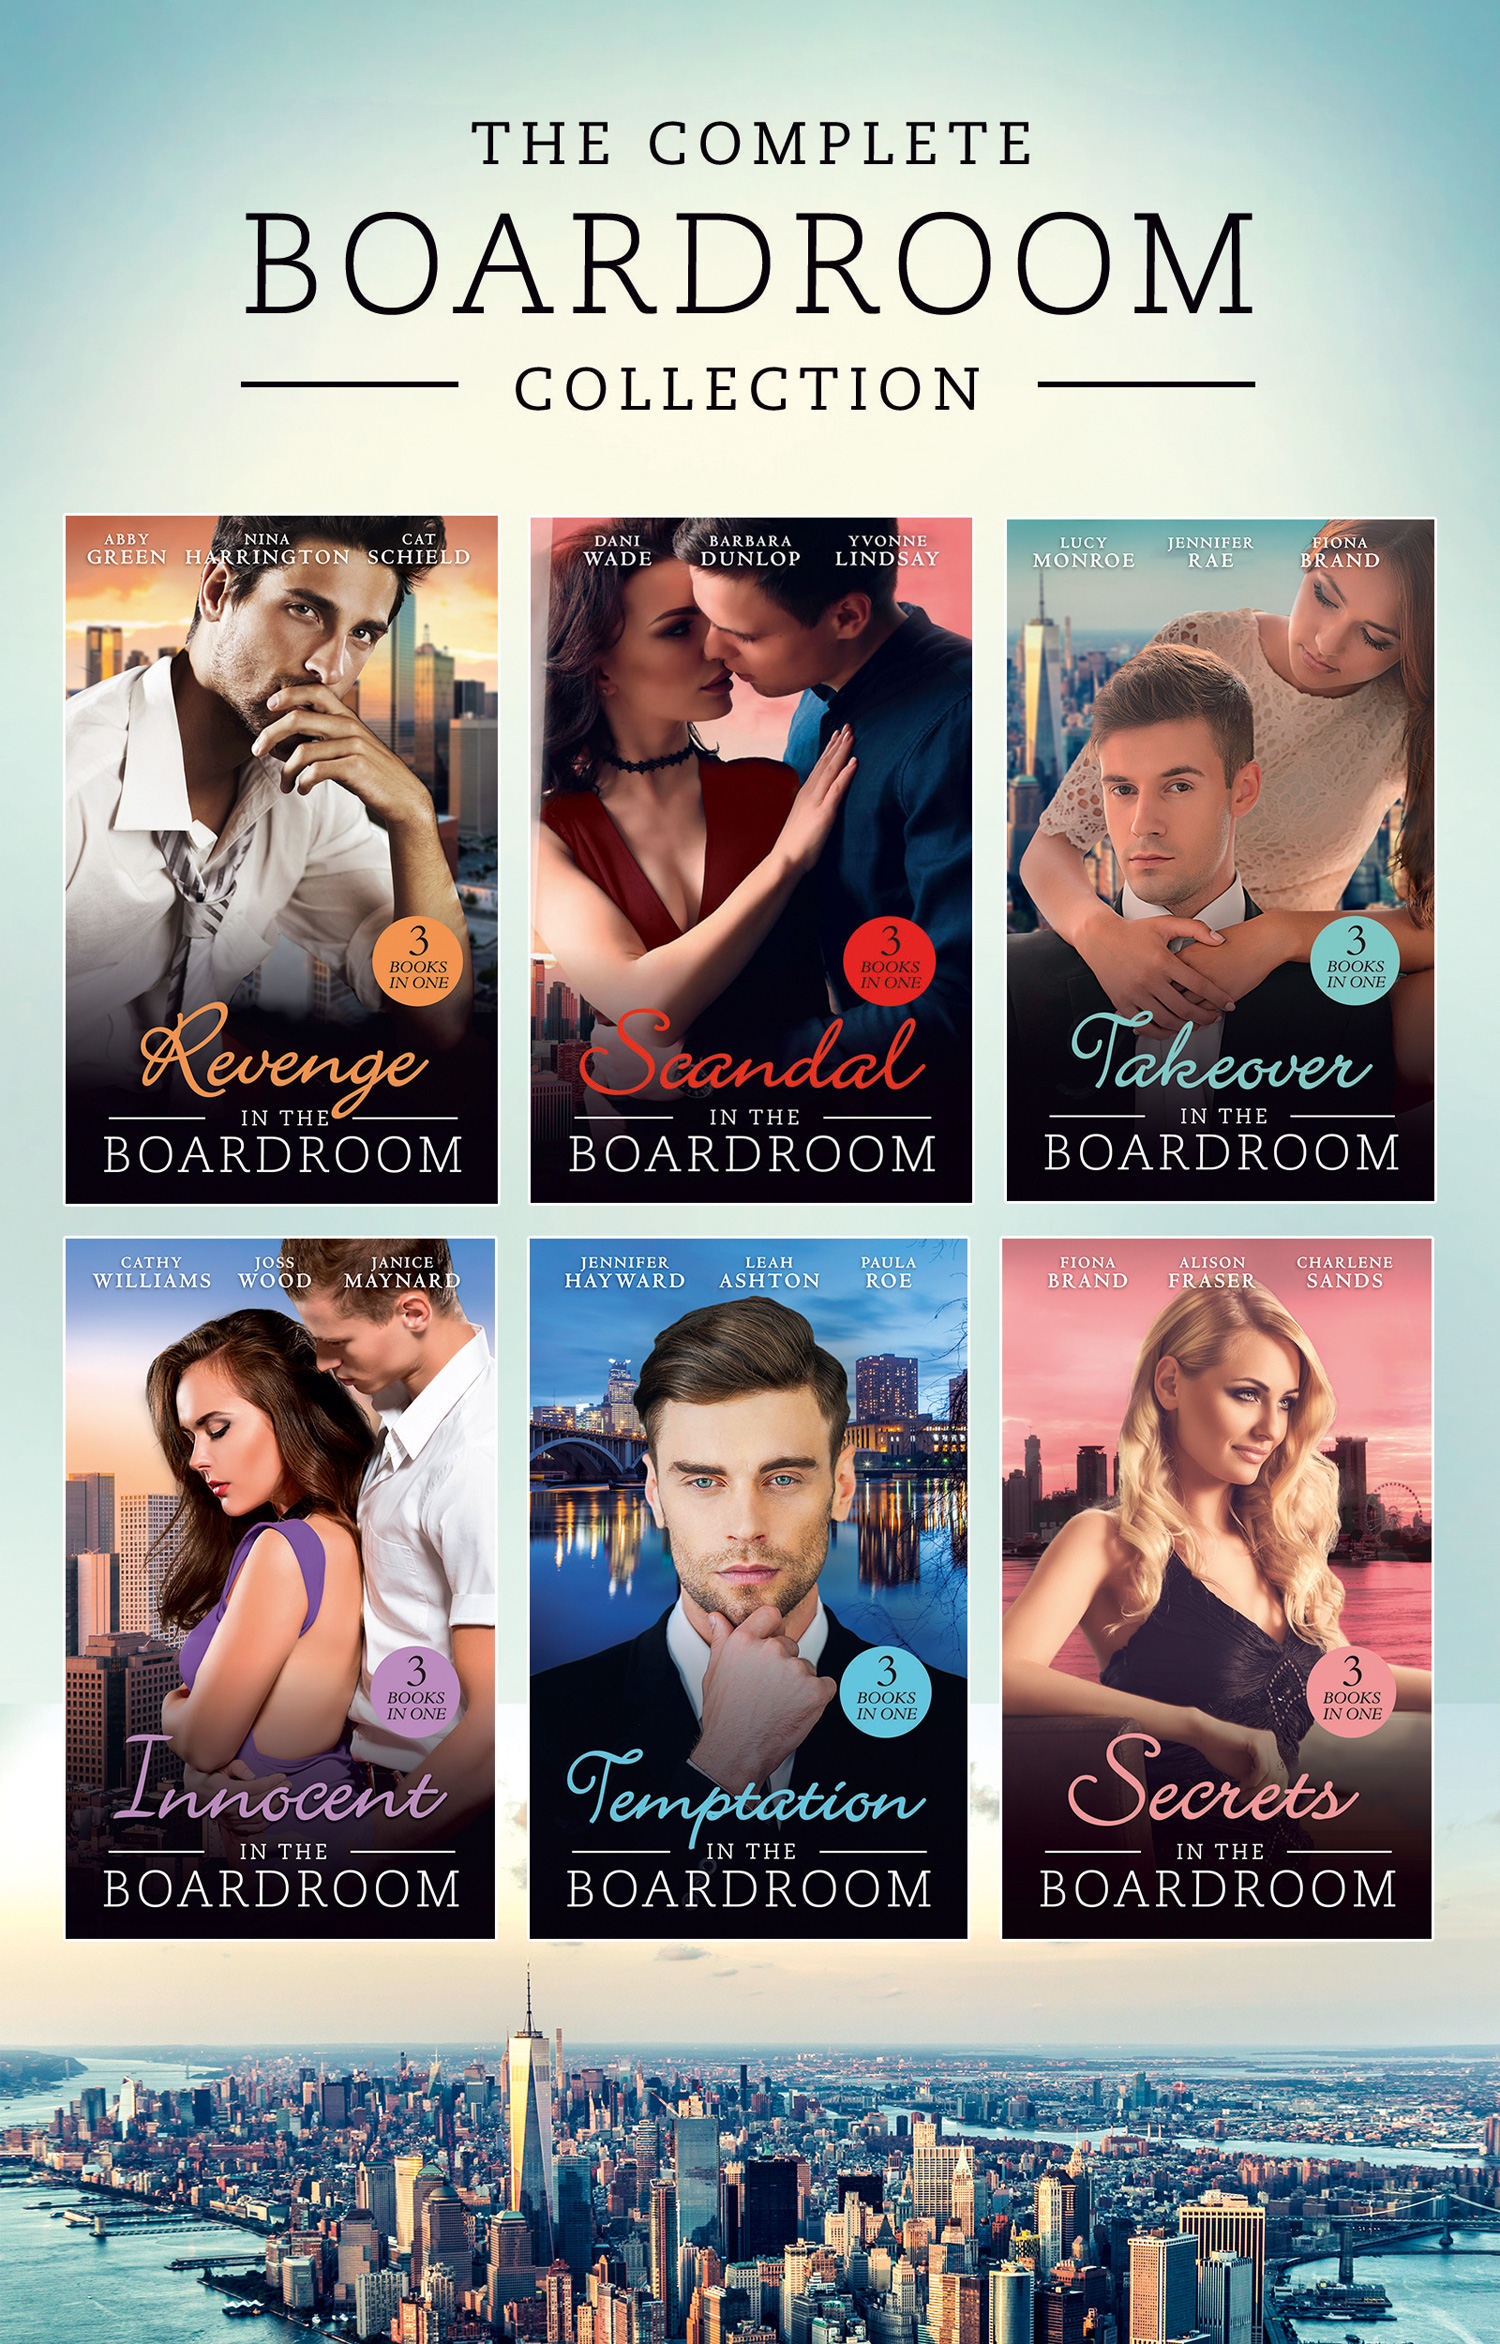 The Complete Boardroom Collection